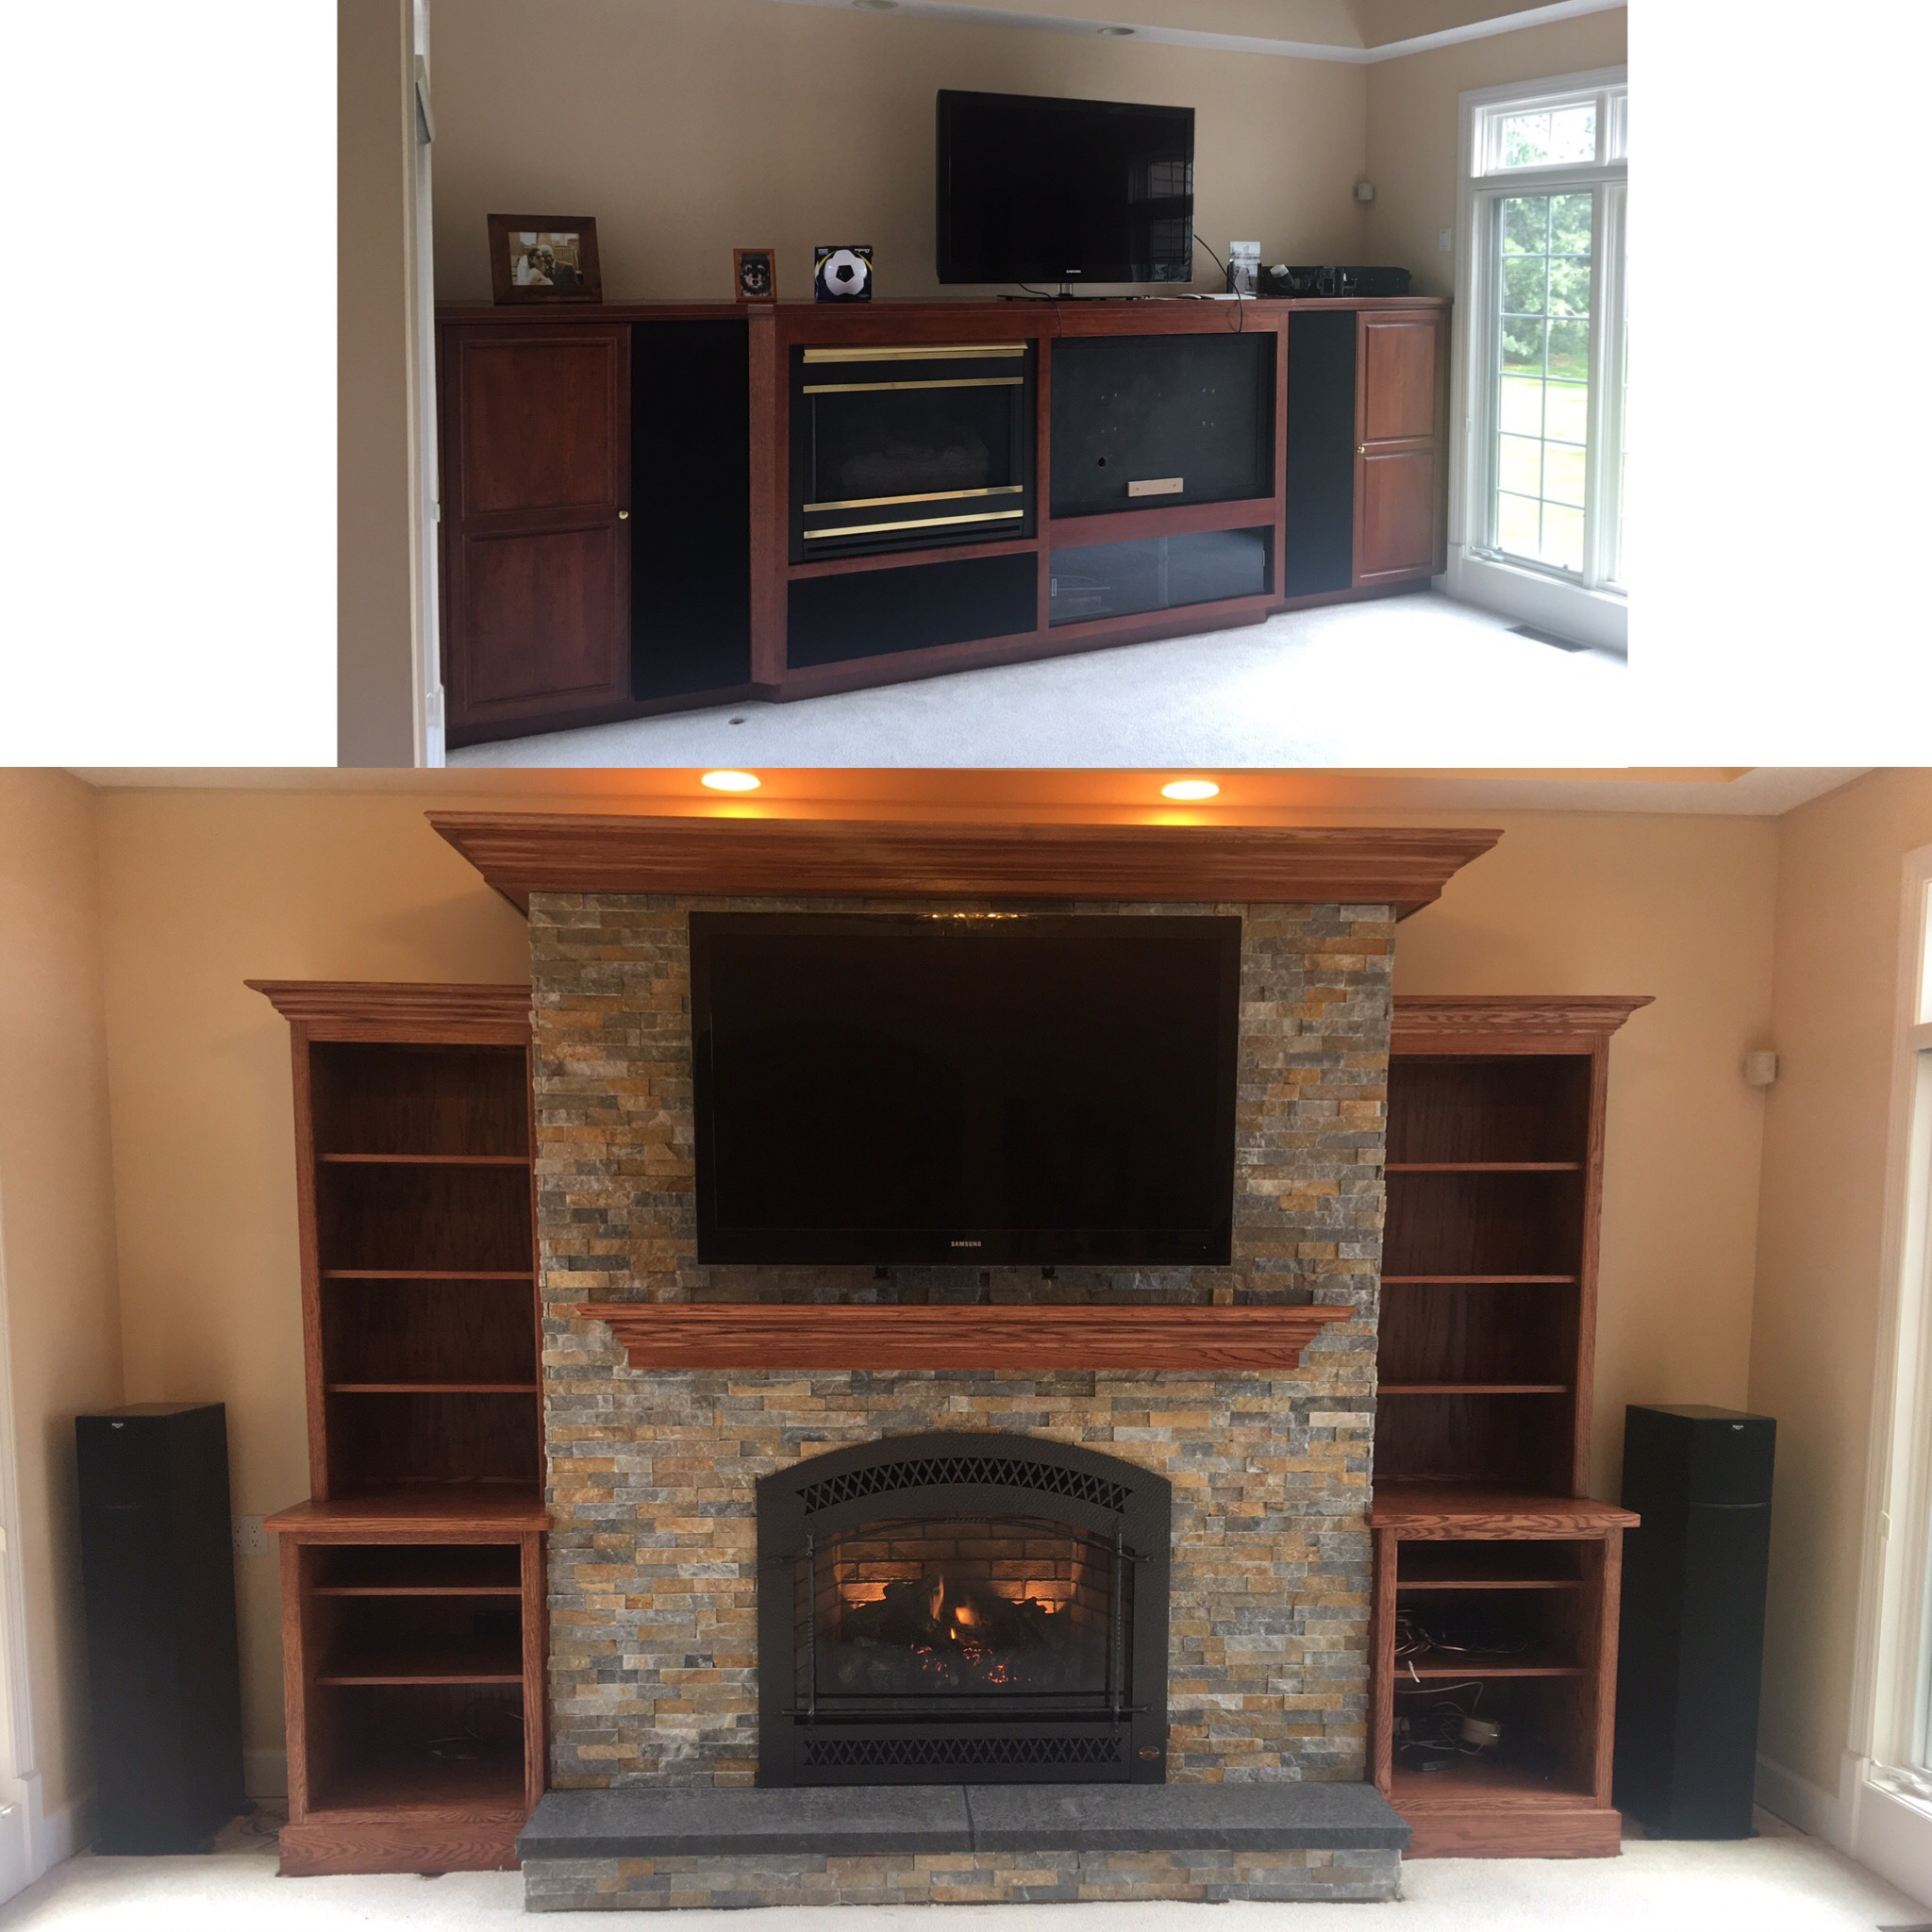 Image of a traditional 864TRV by Fireplace Xtordinair and the preexisting gas fireplace as the before.